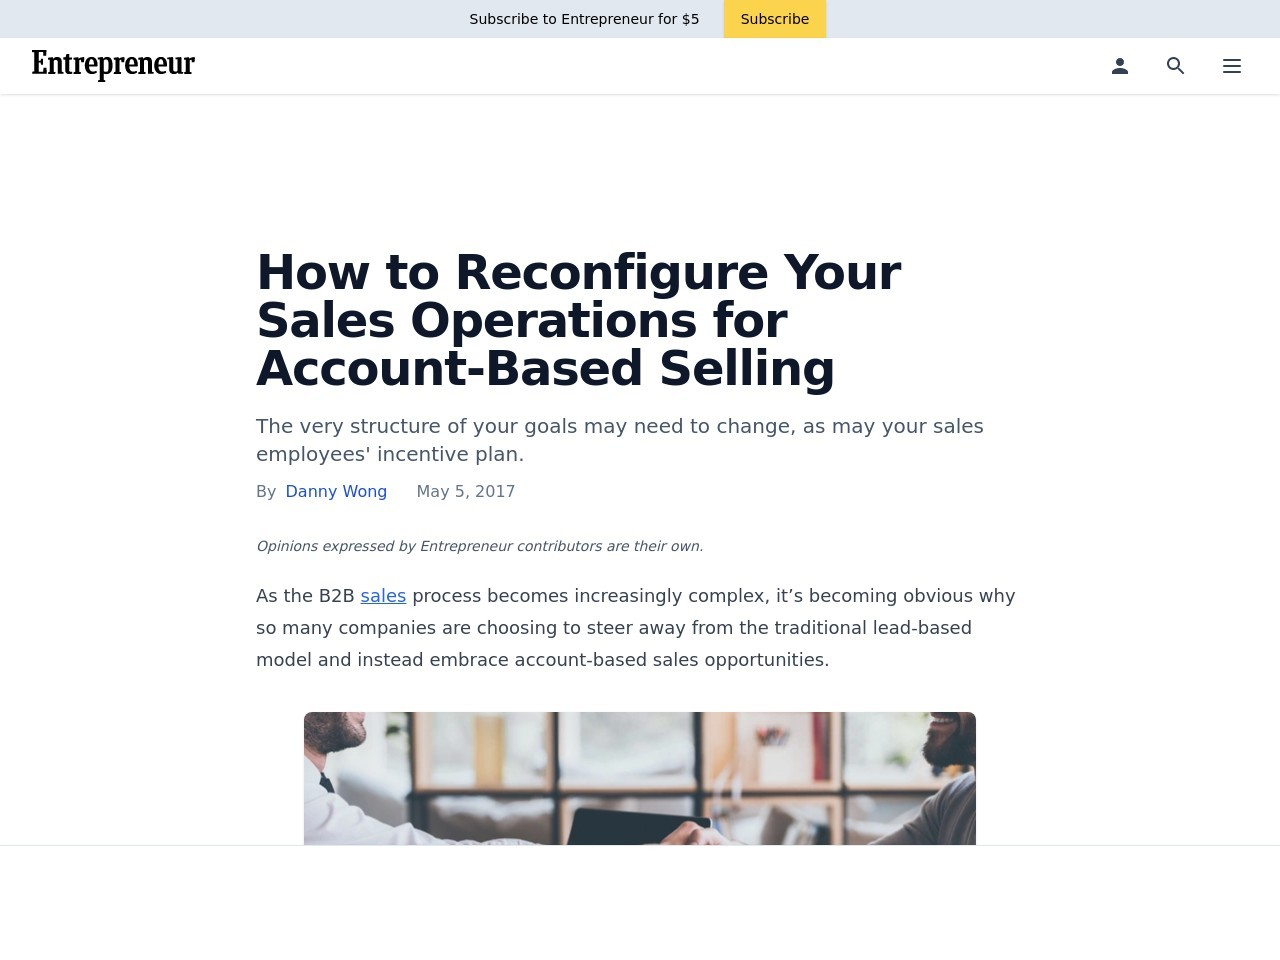 How to Reconfigure Your Sales Operations for Account-Based Selling